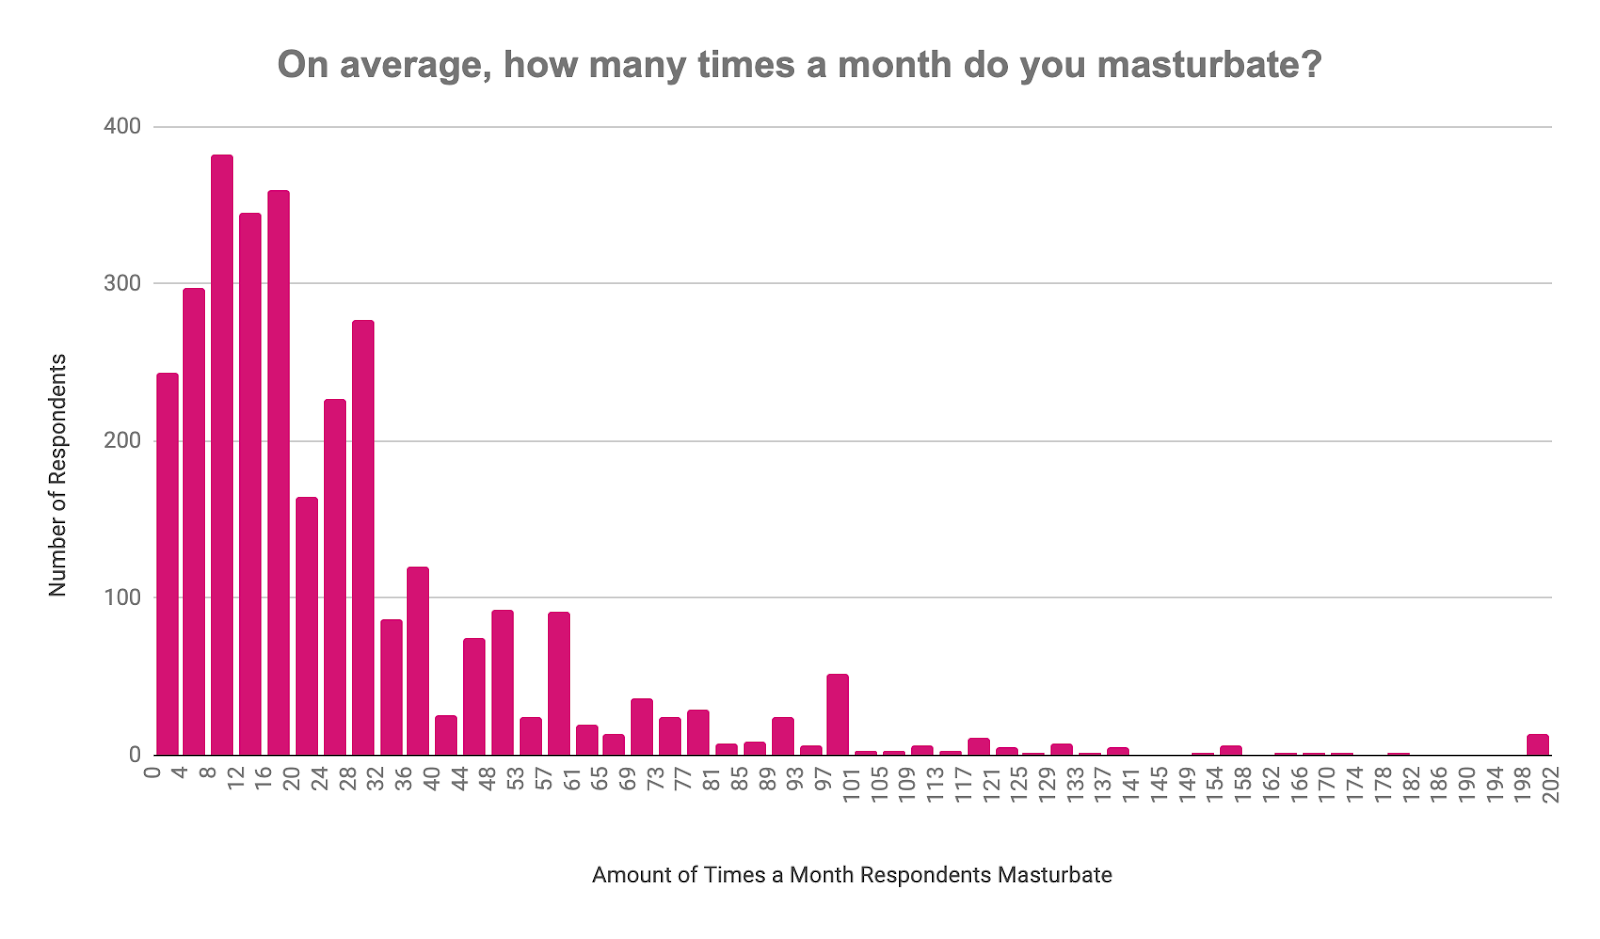 Times people reported masturbating per month